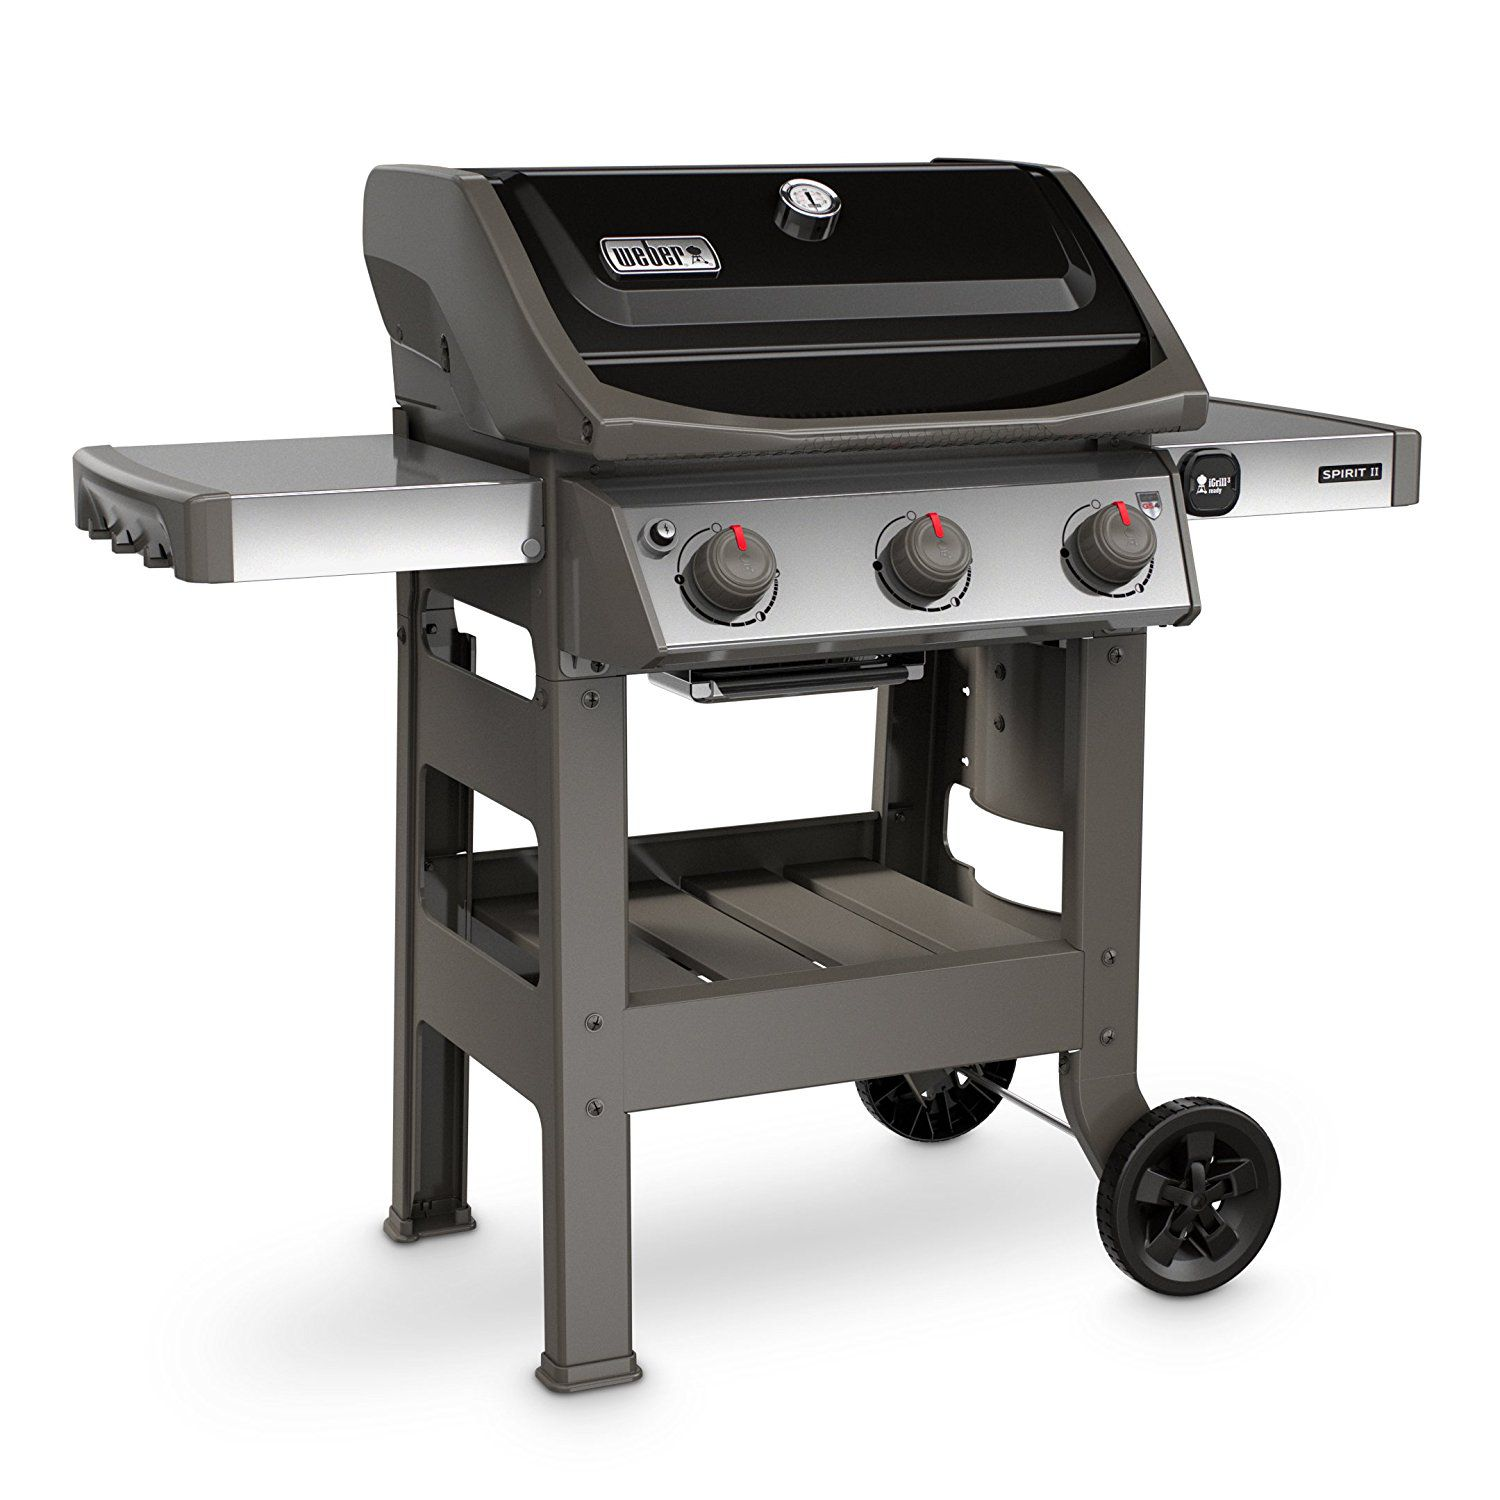 The 8 Best Gas Grills Under 500 Of 2019 - Gas Grill